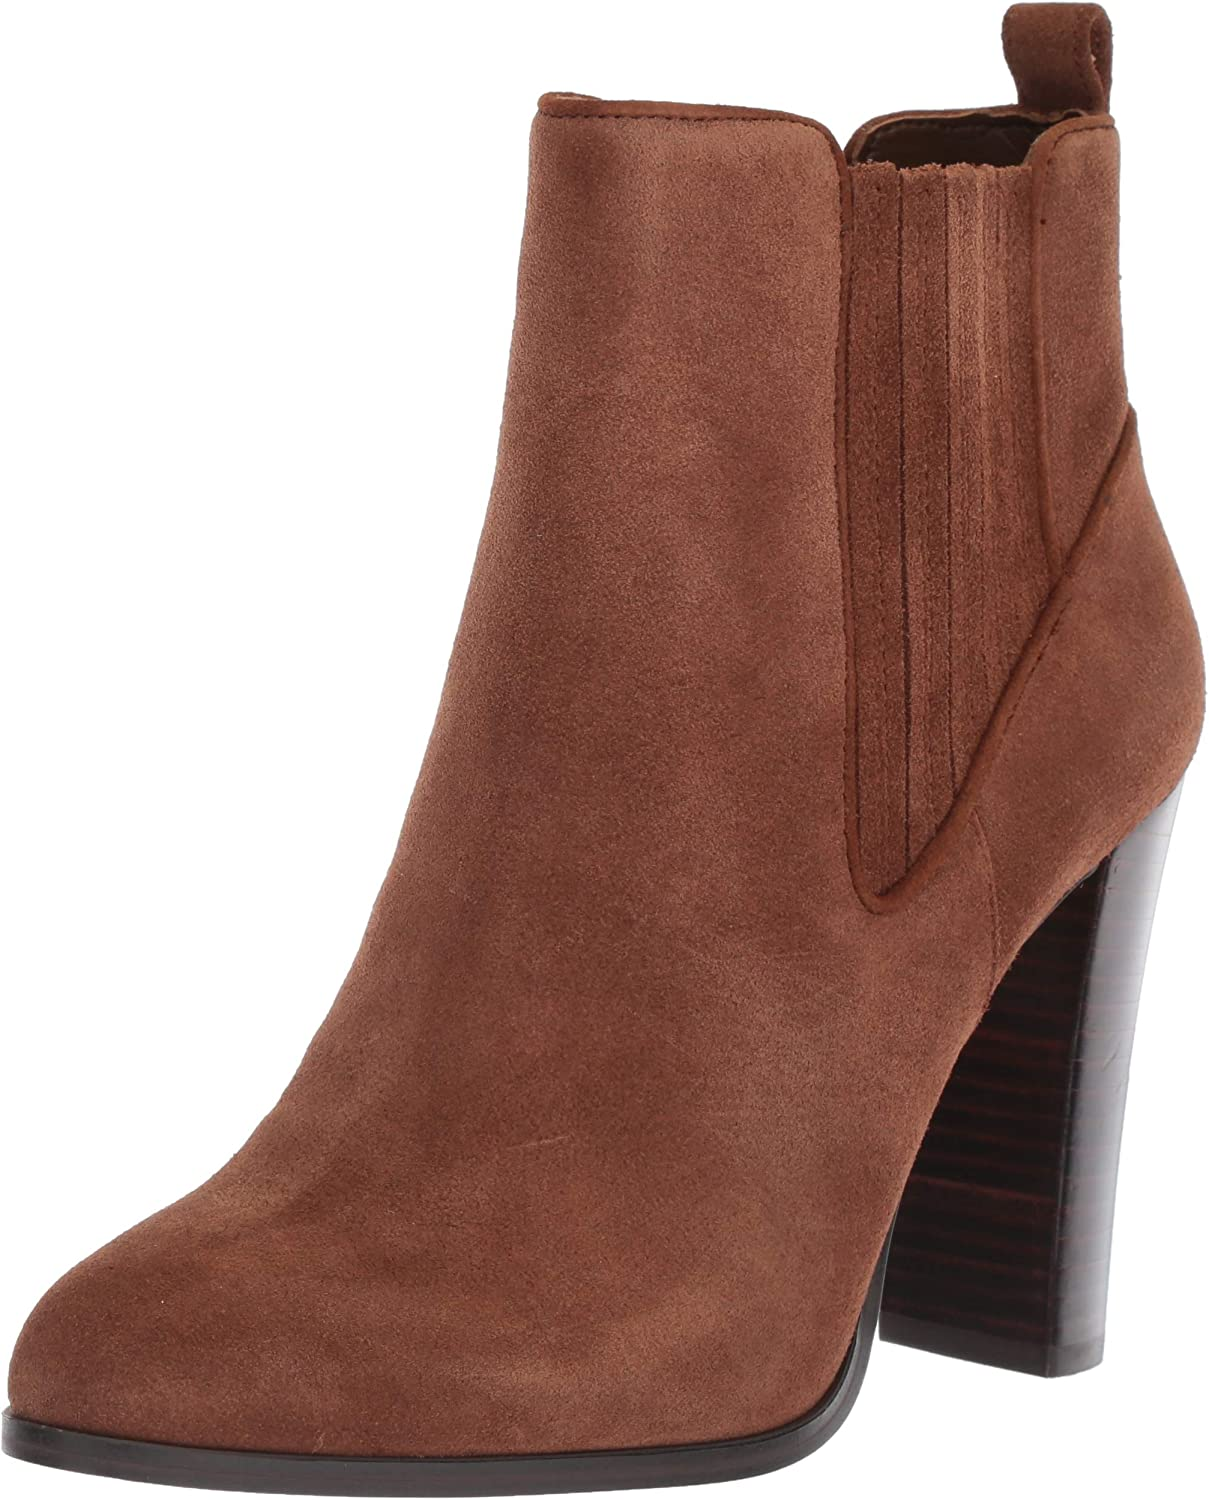 Nine West Womens Crimson Suede Ankle Boot